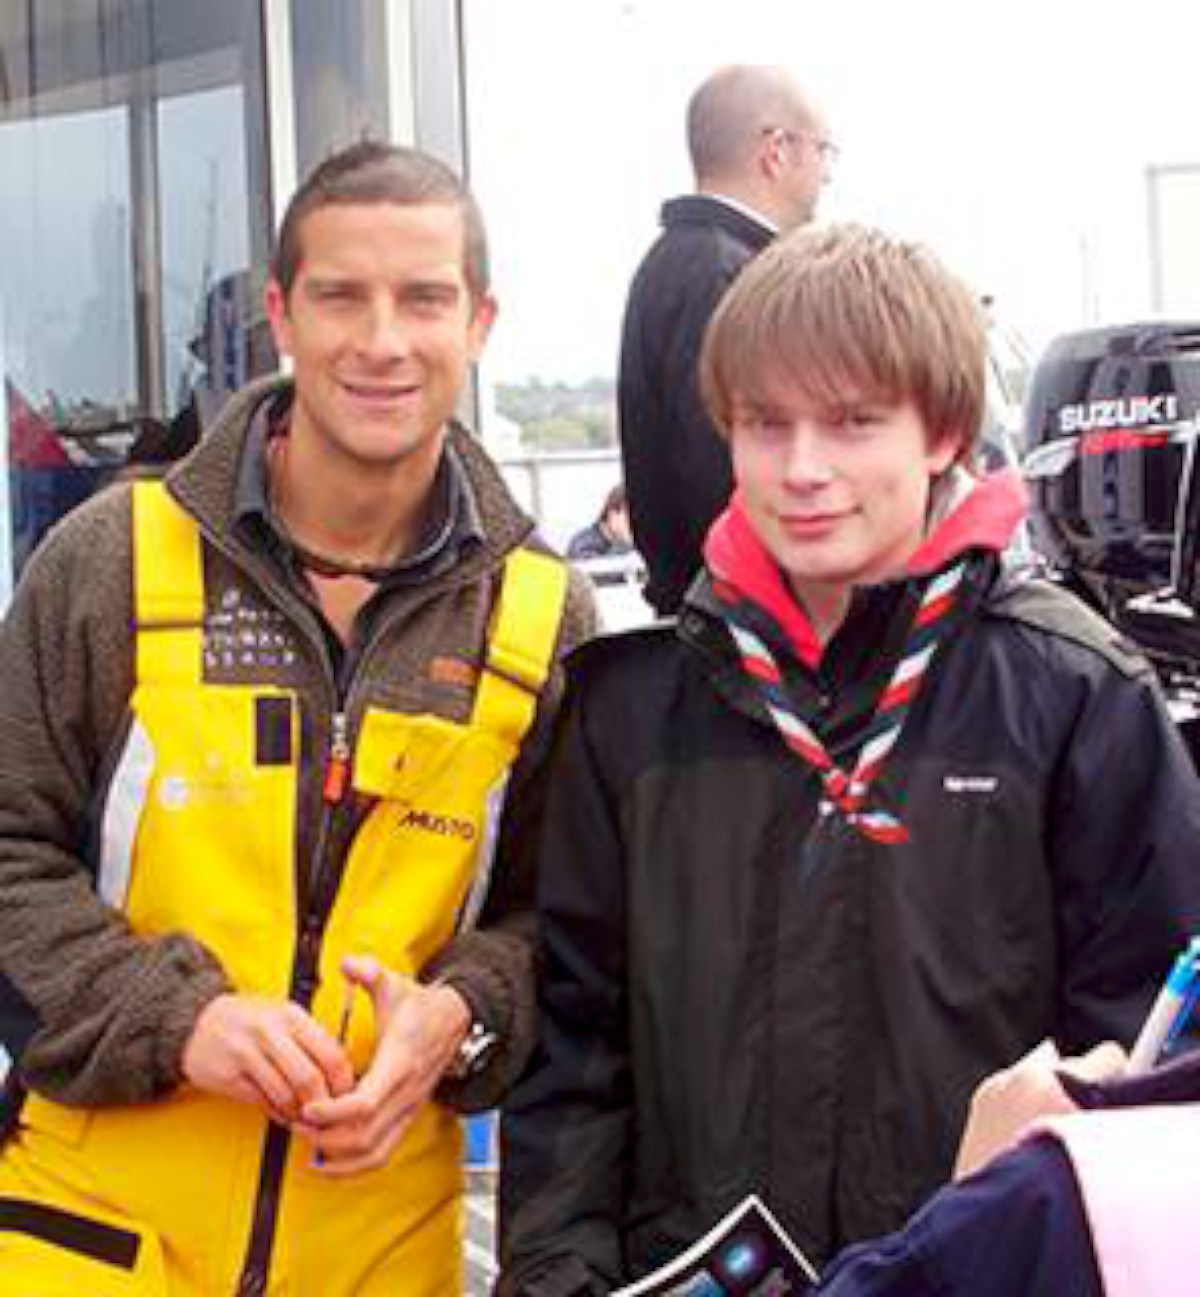 Trip of a lifetime: Max Harvey with Bear Grylls